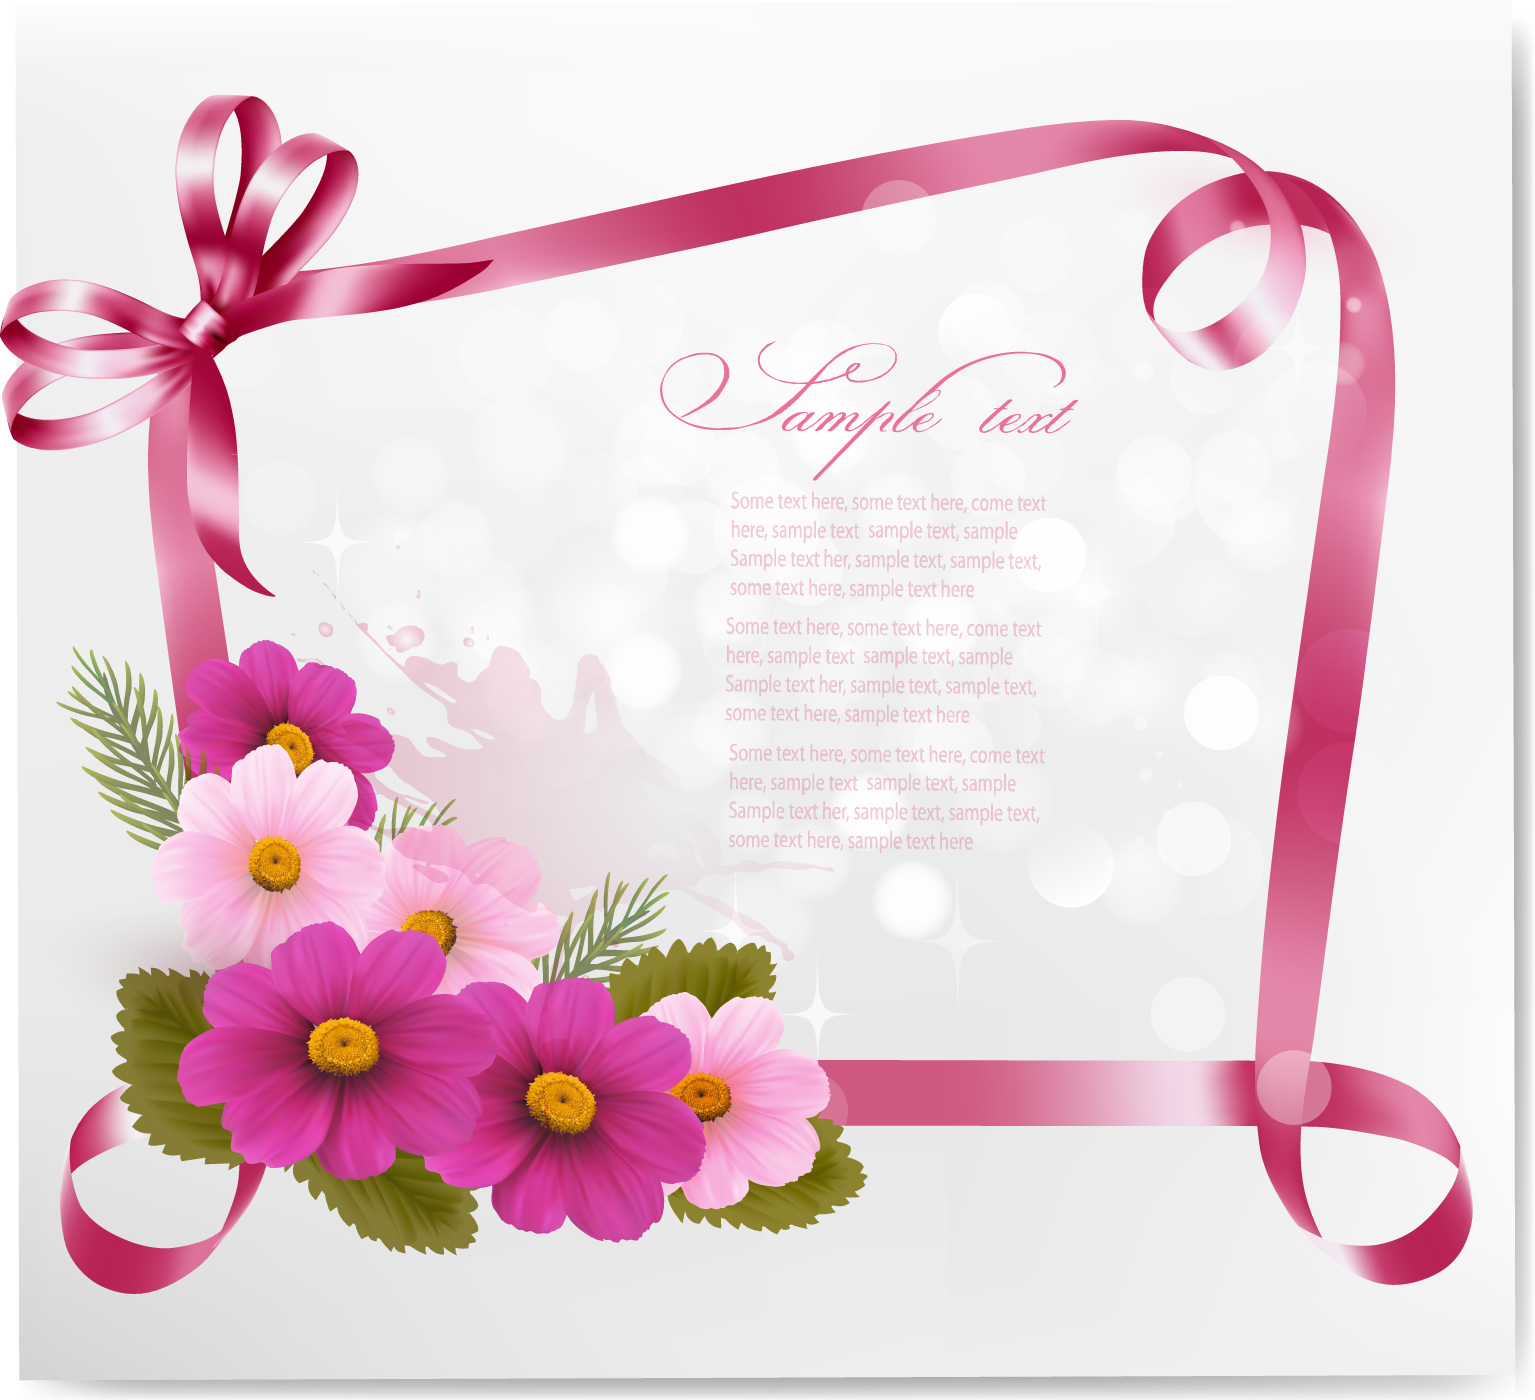 Ribbon With Flower Greeting Card Vector 02 Free Download